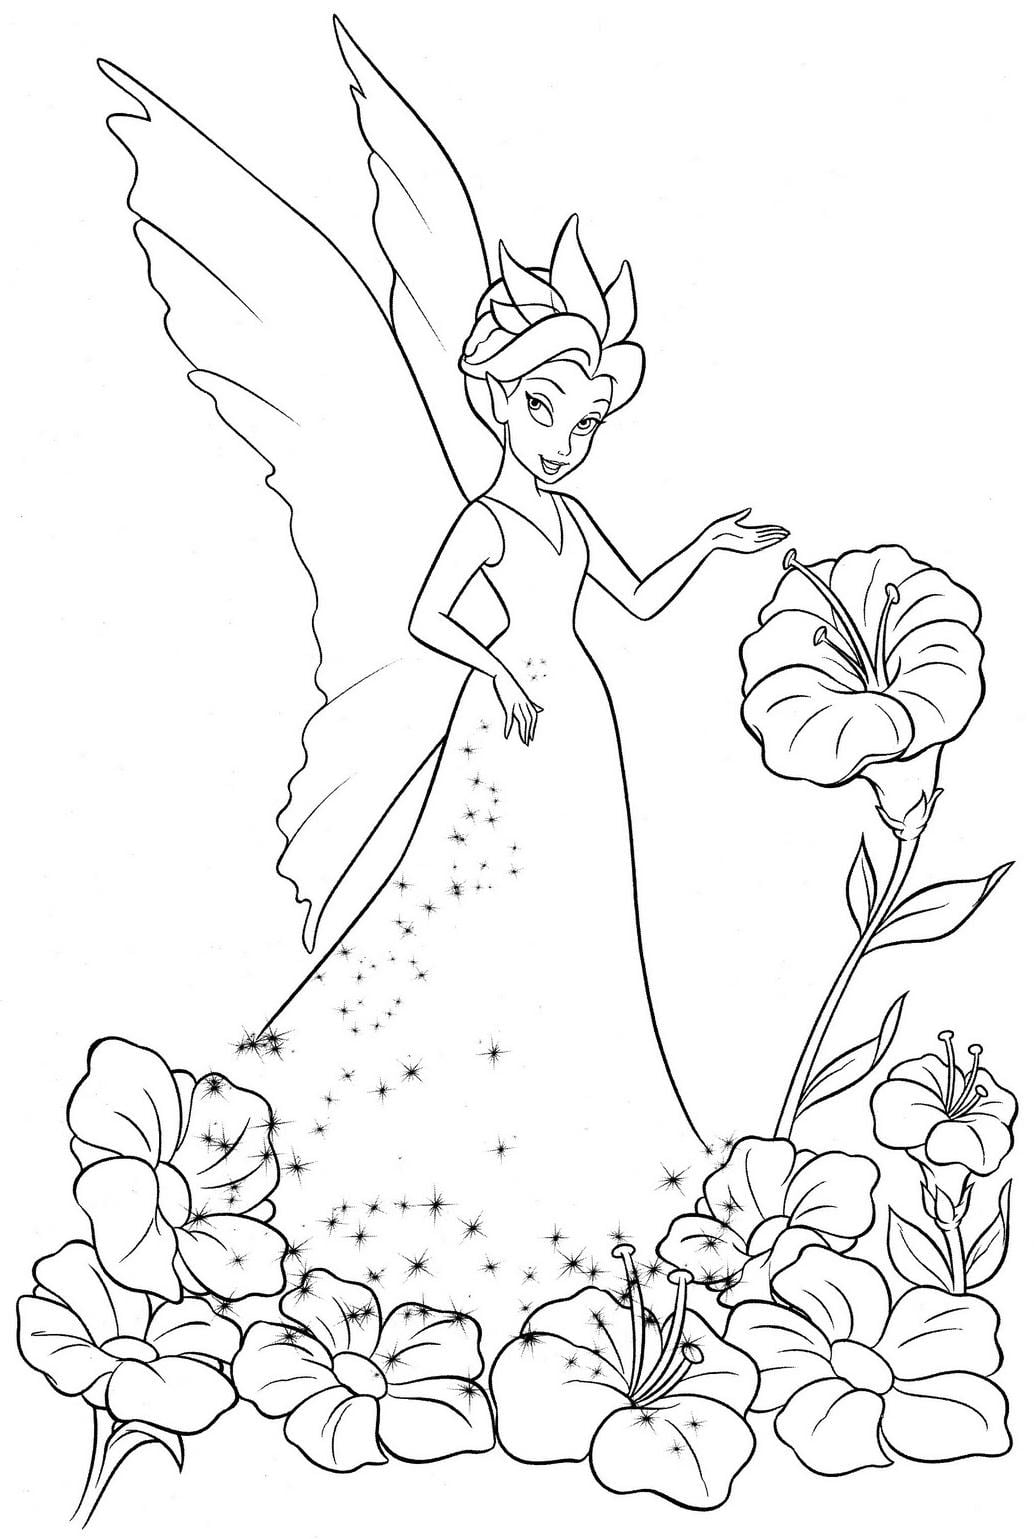 Coloring Pages Of Tinkerbell And Friends